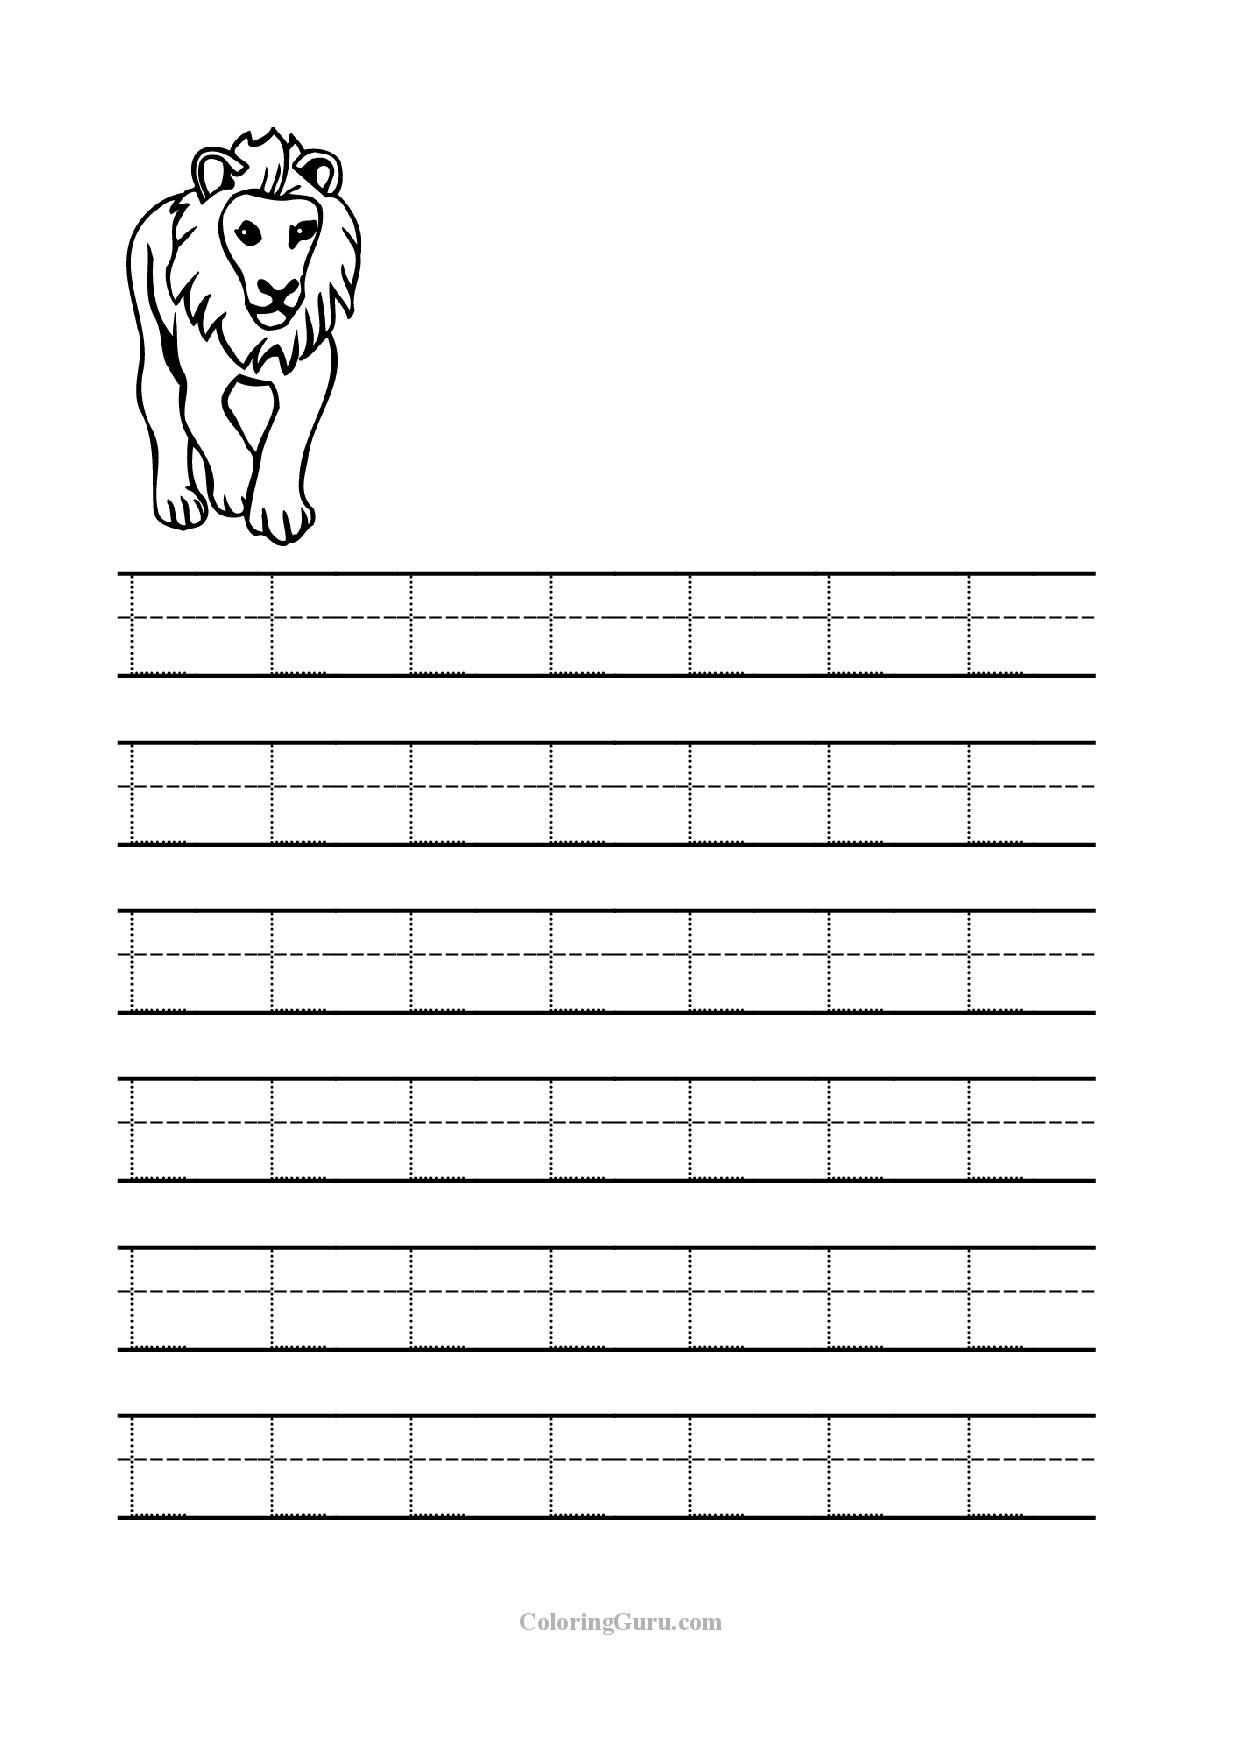 Free Printable Tracing Letter L Worksheets For Preschool inside Letter L Tracing Worksheet